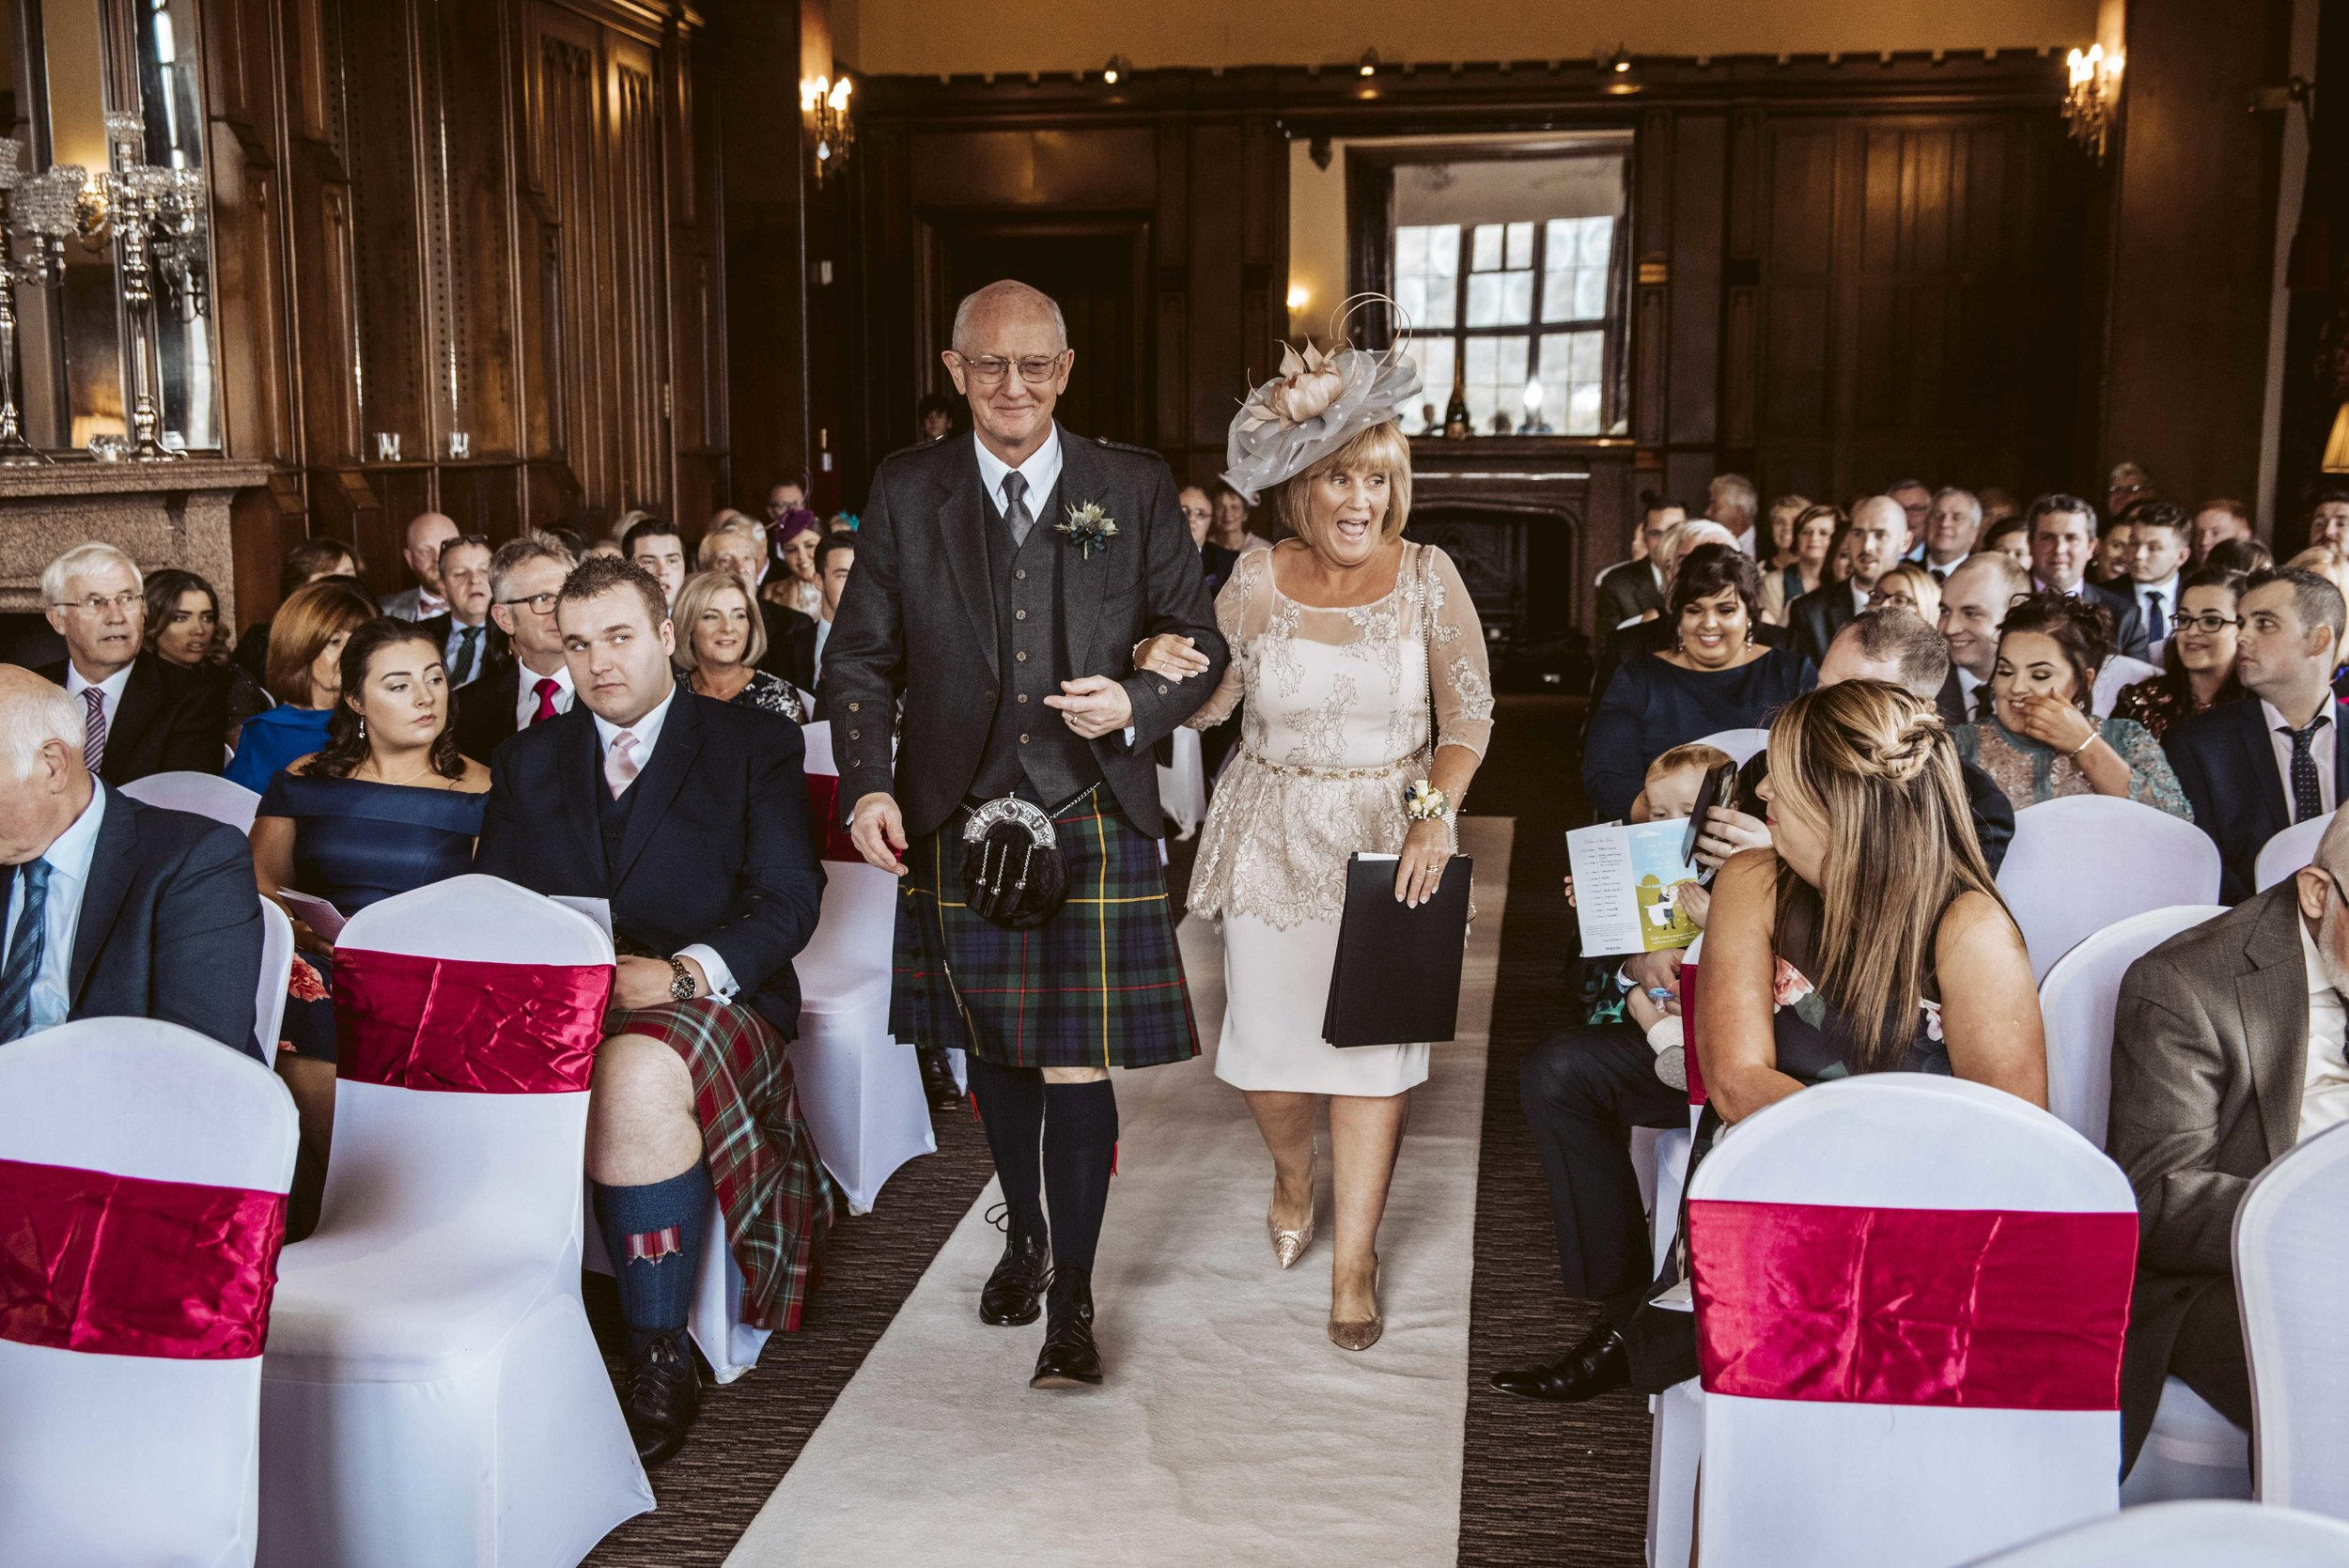 Mar Hall Wedding 2018, Haminsh & Emma McEwan 22.JPG